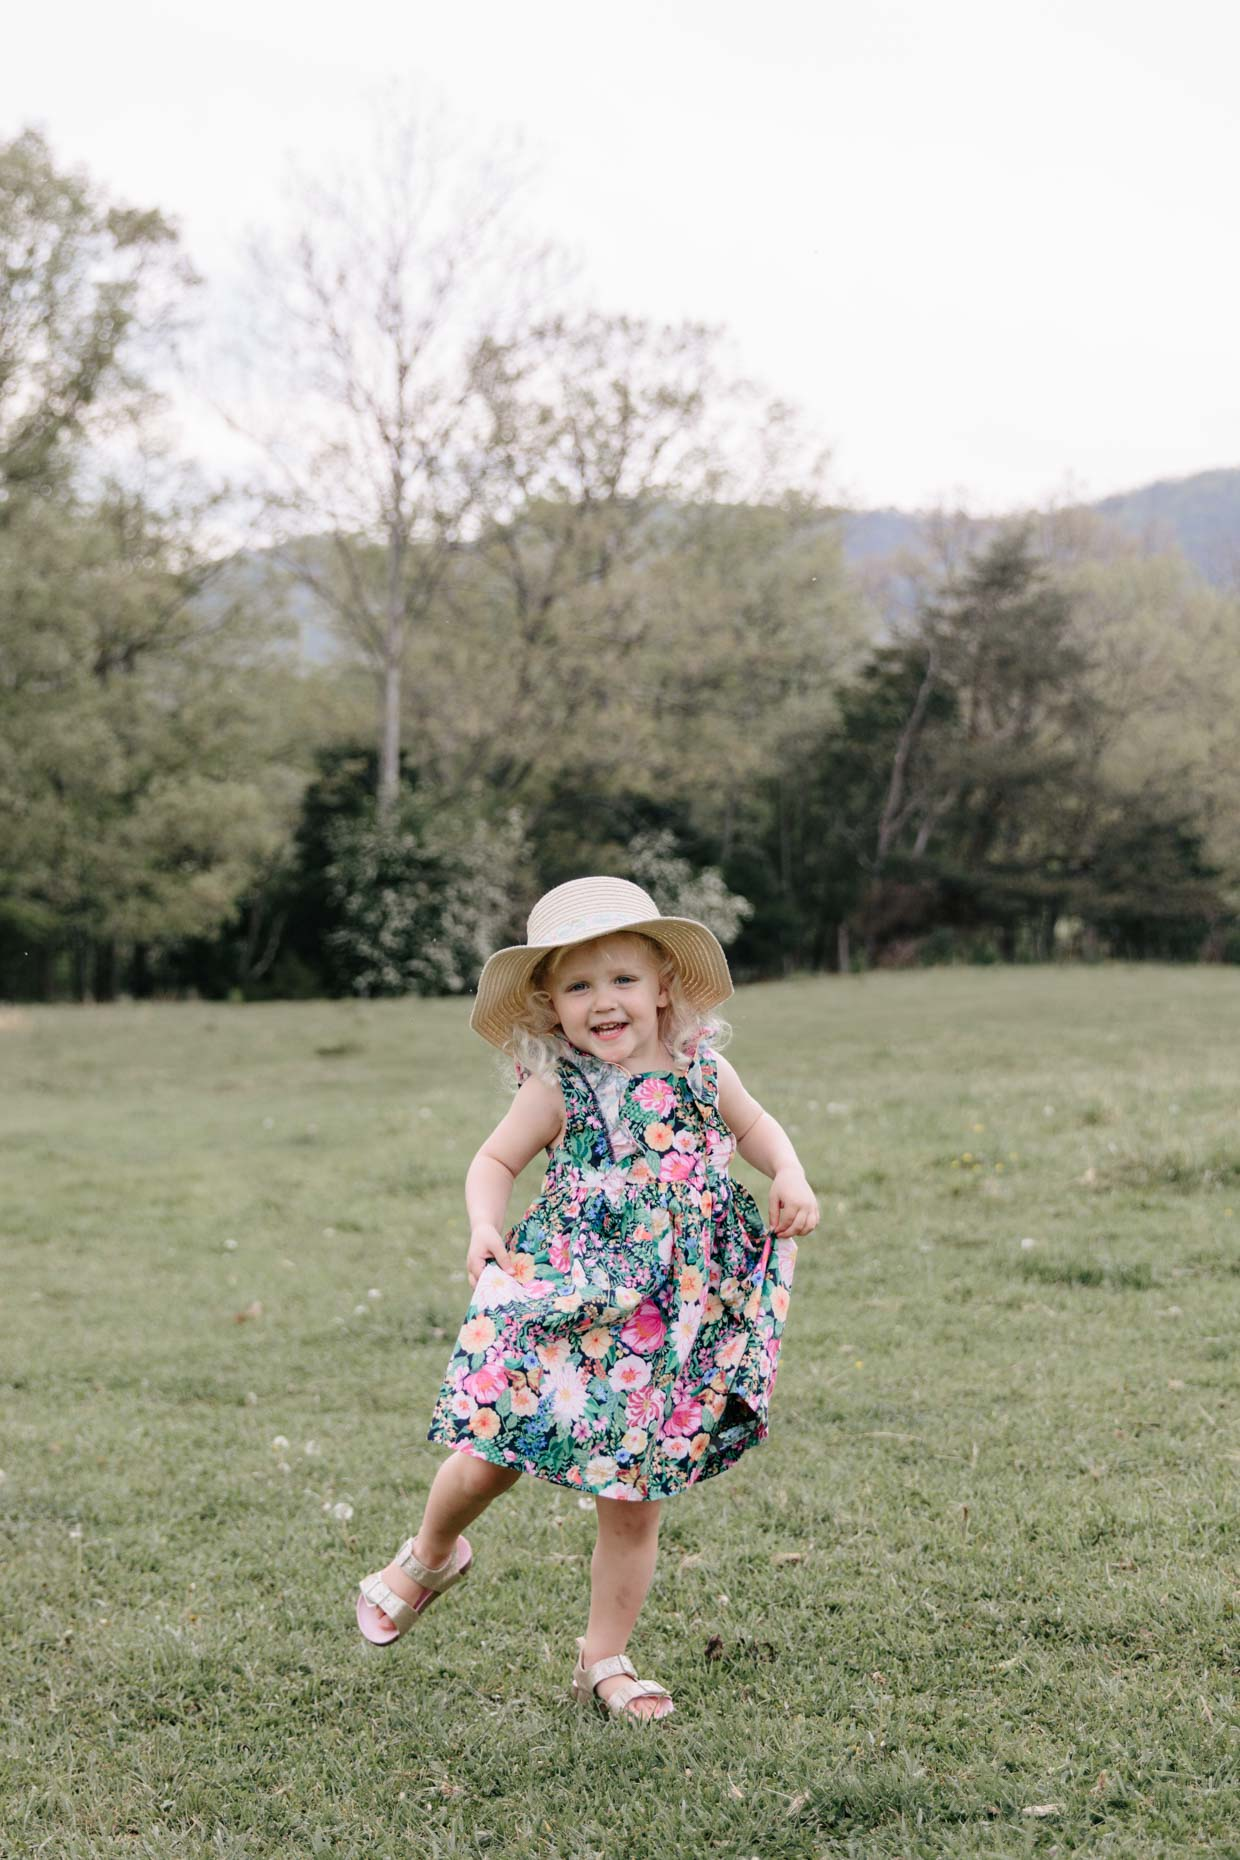 Meagan Brandon fashion blogger of Meagan's Moda shares toddler girl style for Mother's Day photo shoot floral dresses and straw hats